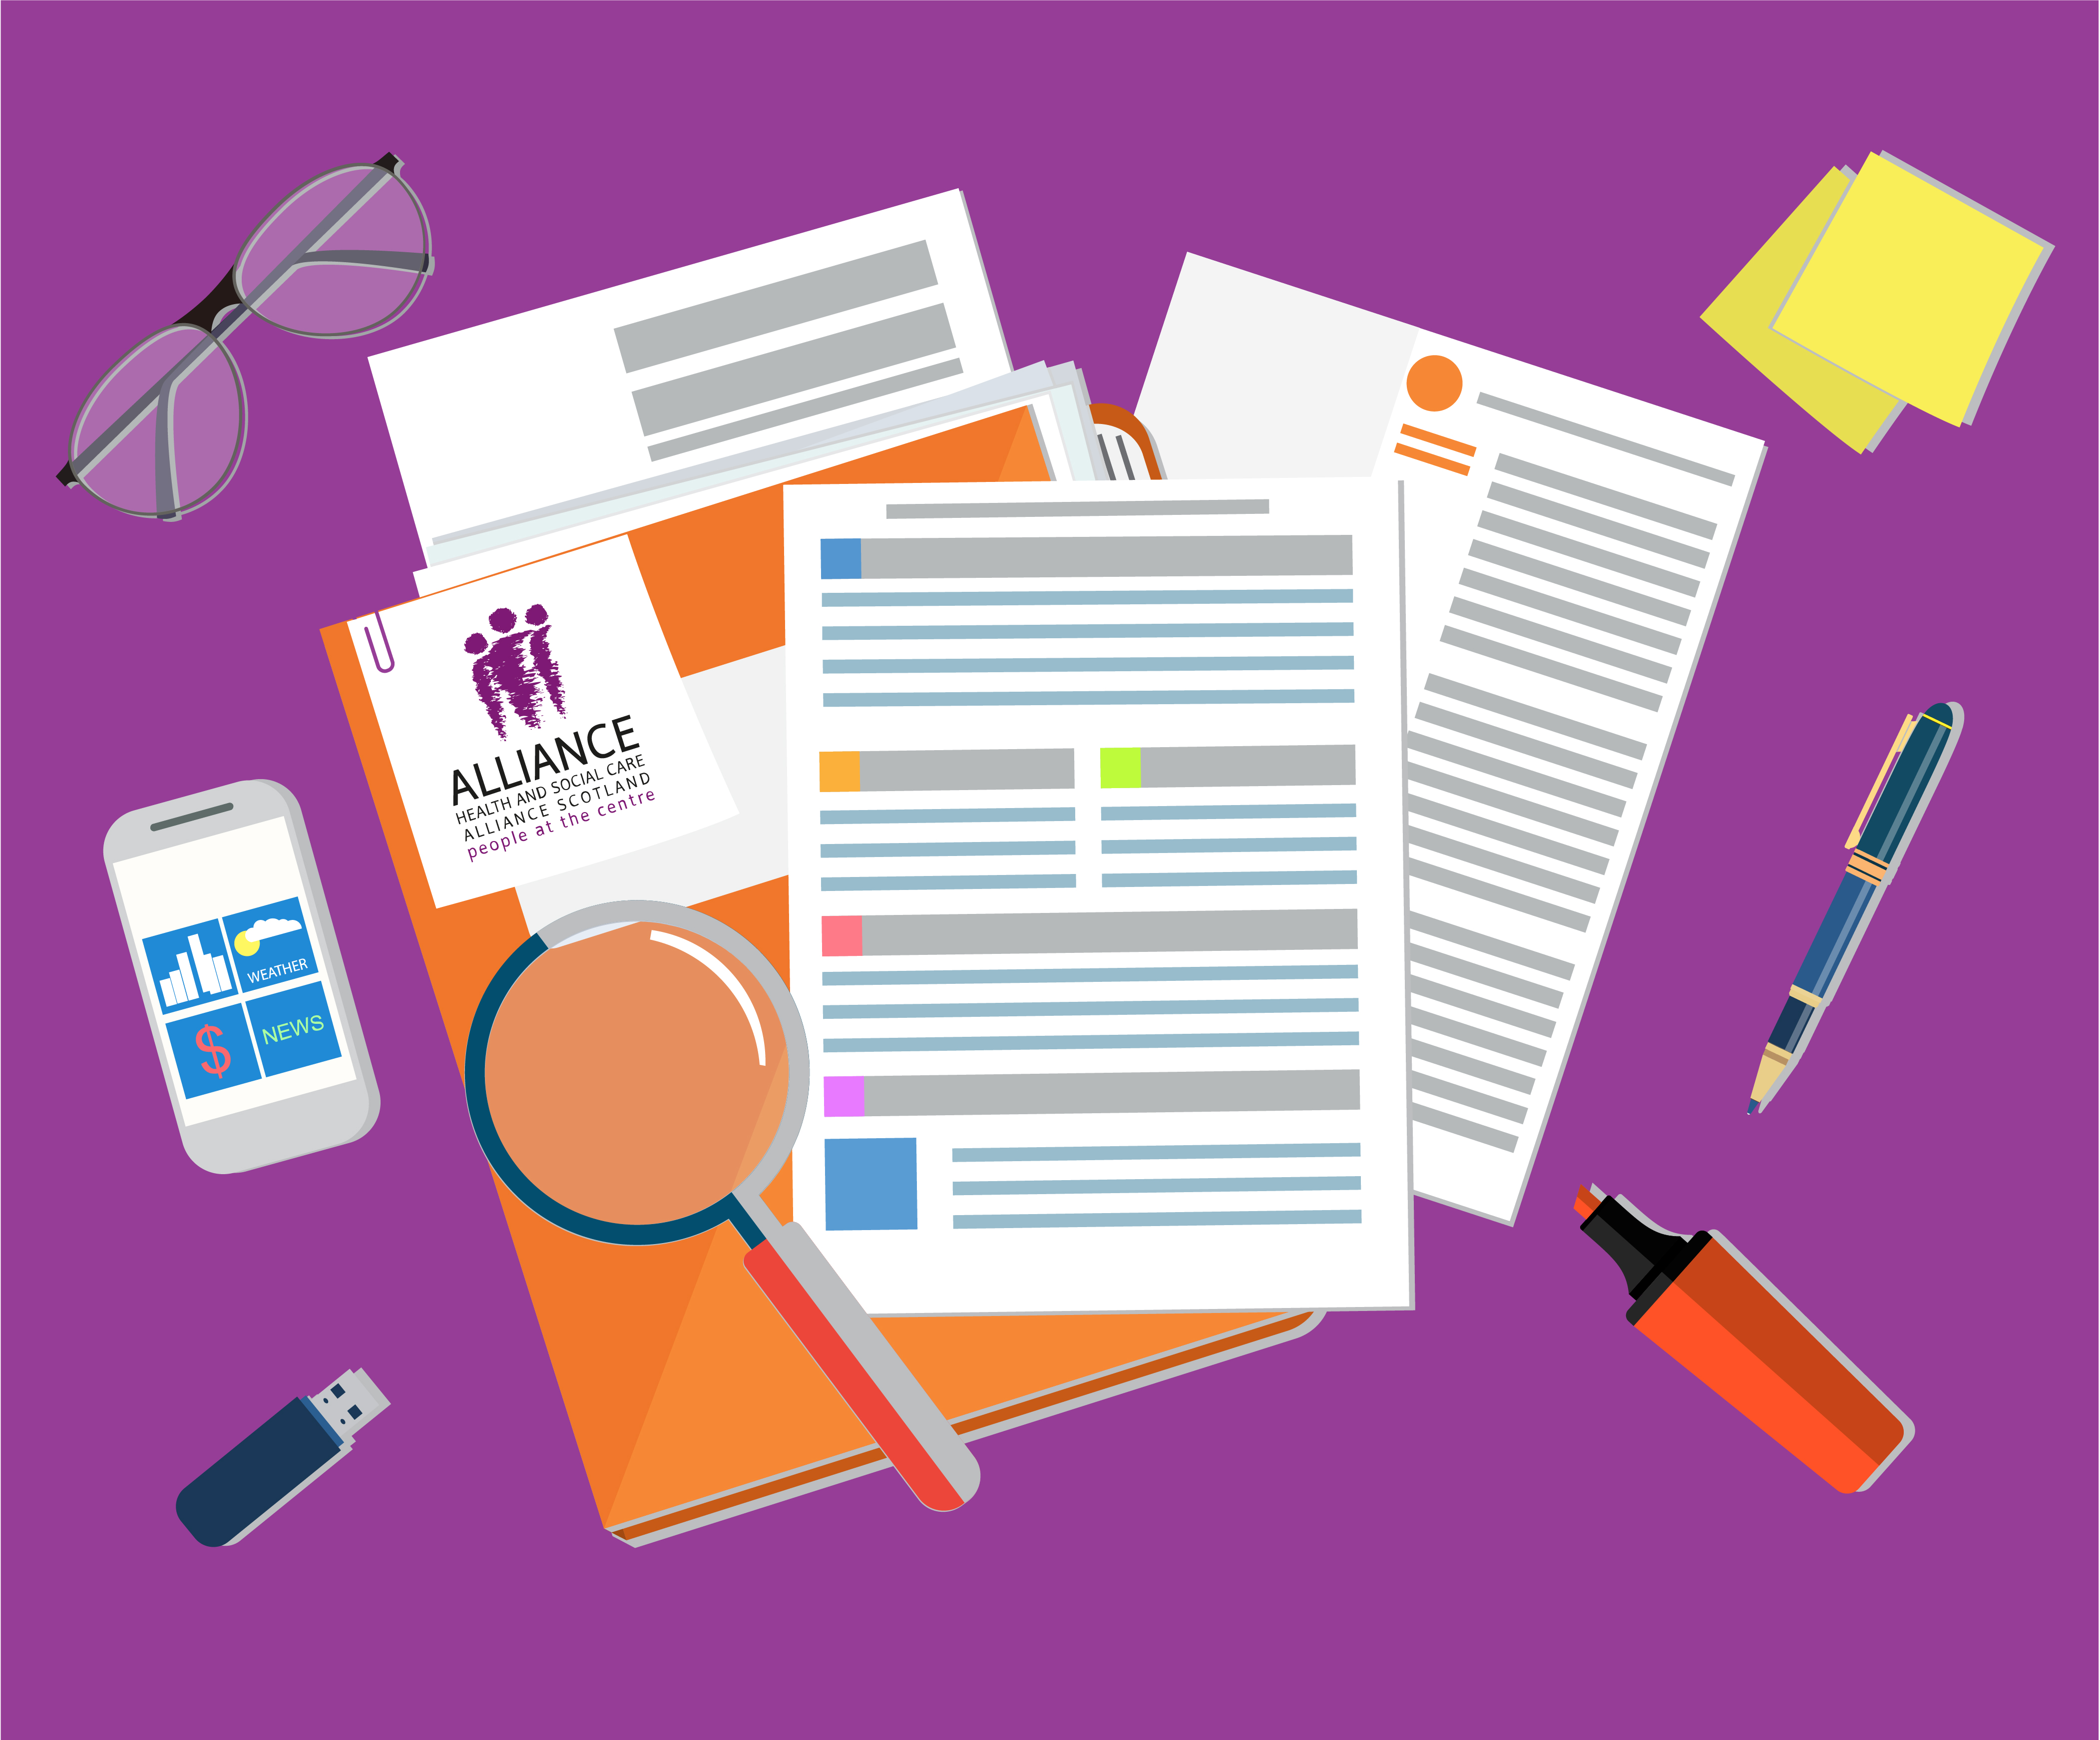 Overhead illustration of a desk scene featuring folders, sheets of paper and various stationery